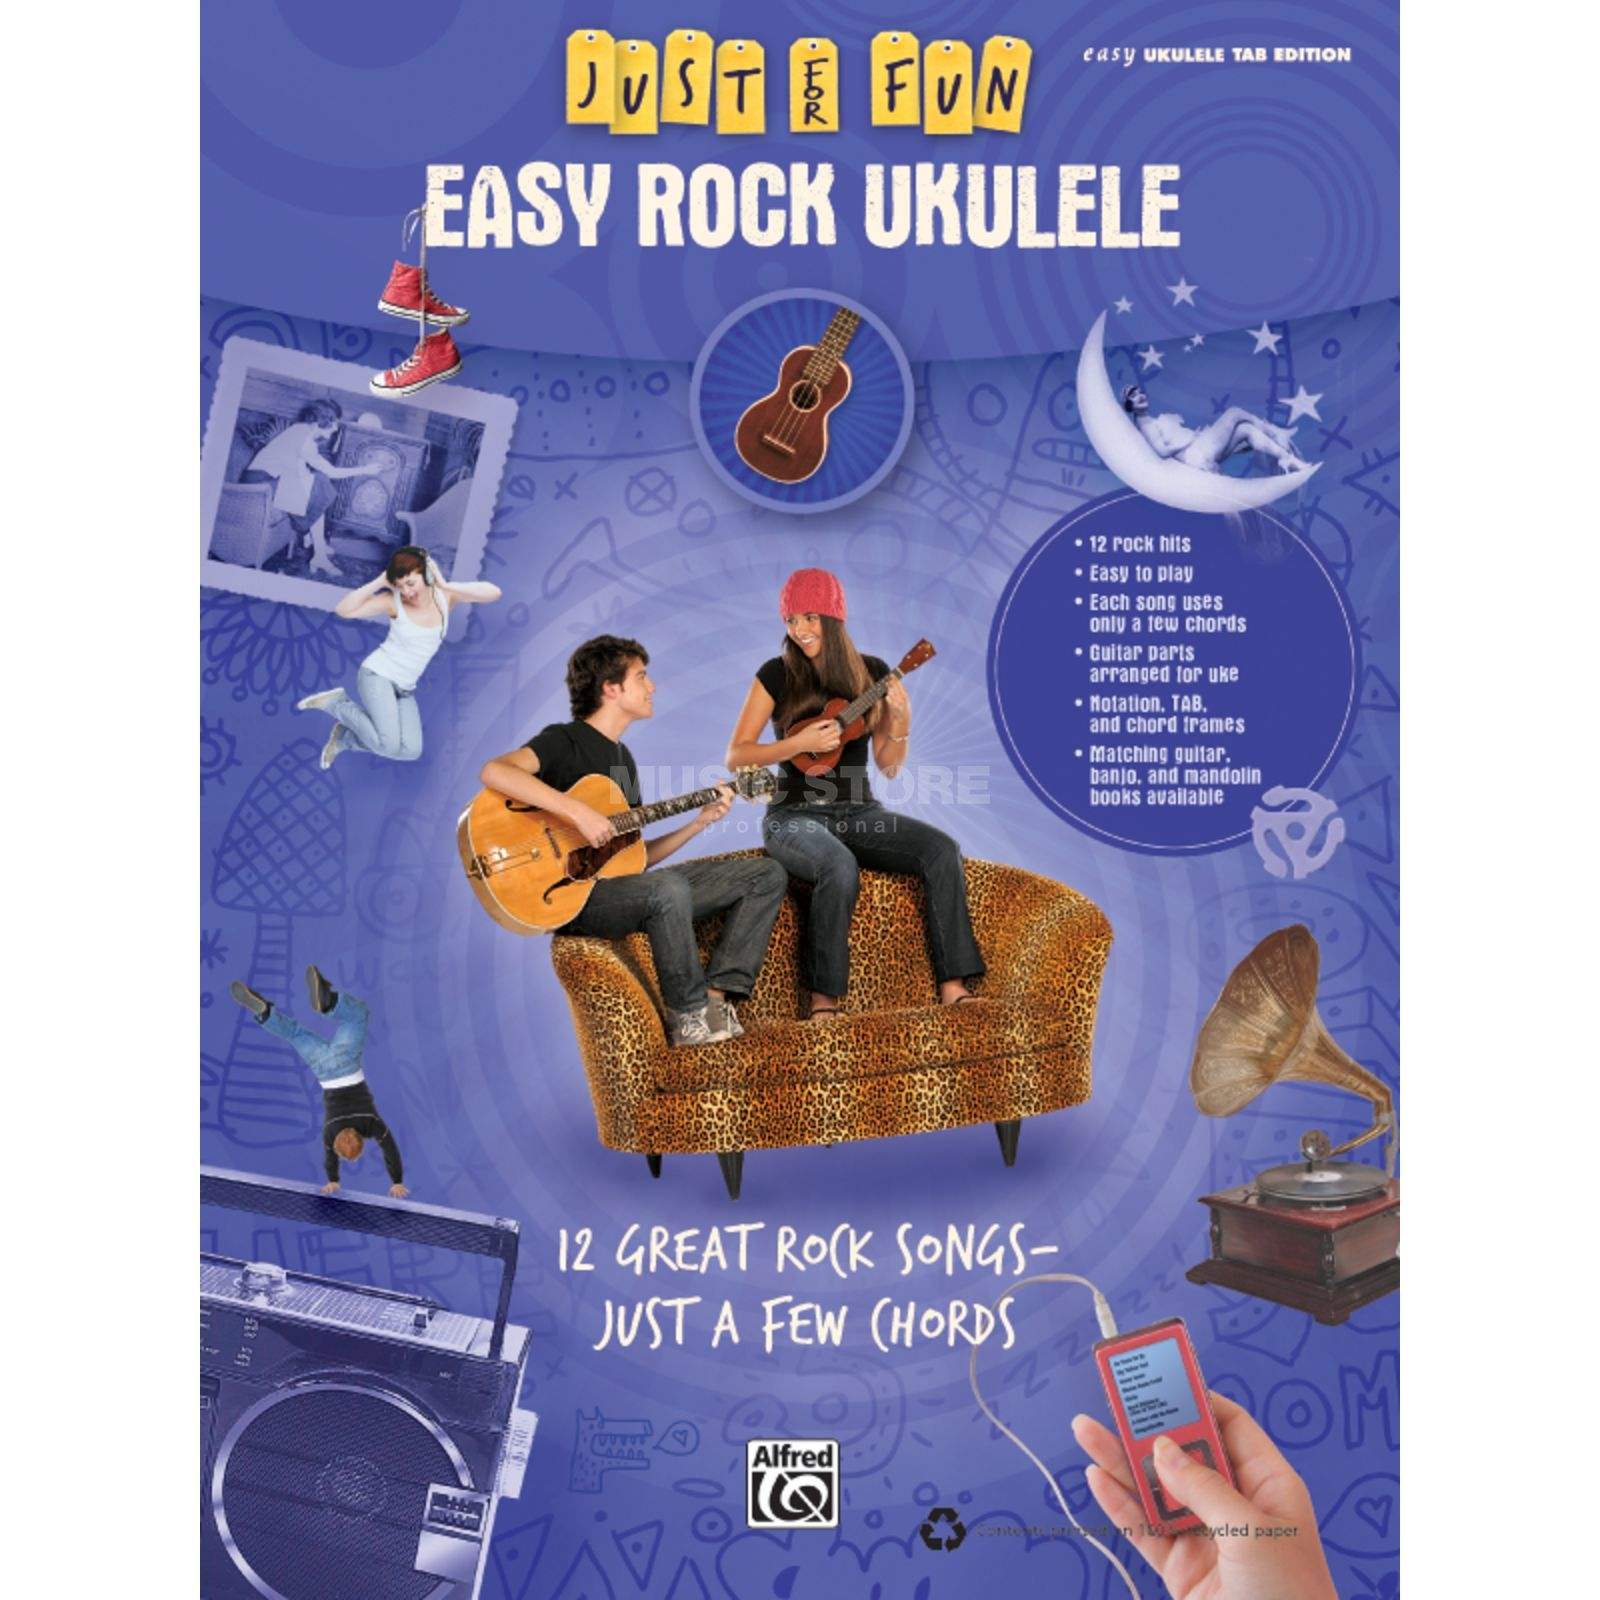 Alfred Music Fun - Easy Rock Ukulele Songbuch Produktbild